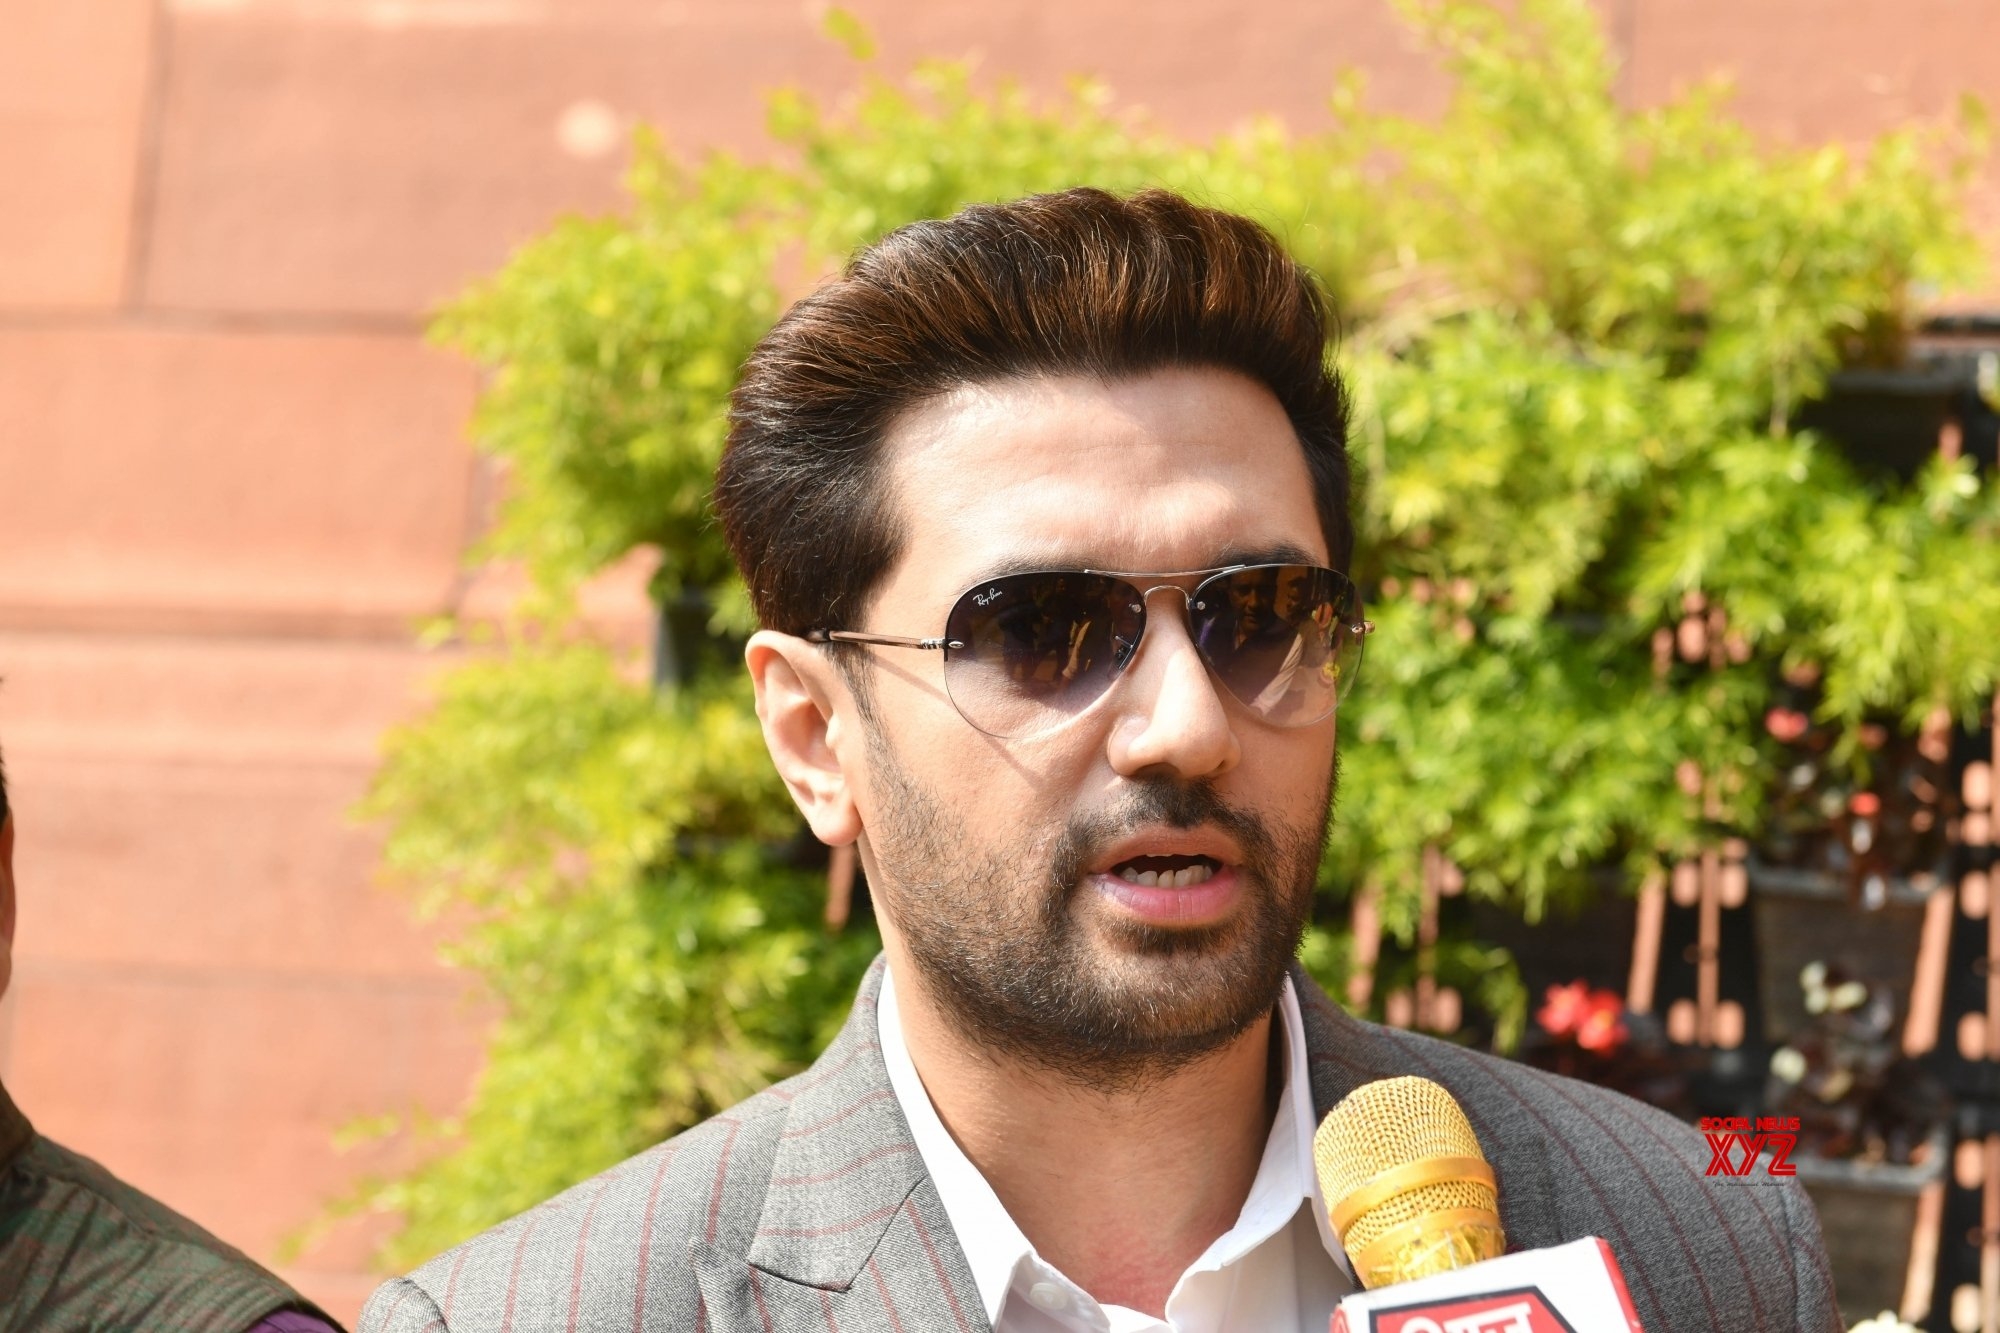 BJP's 'vote katwa' remarks hurt, insult my late father: Chirag